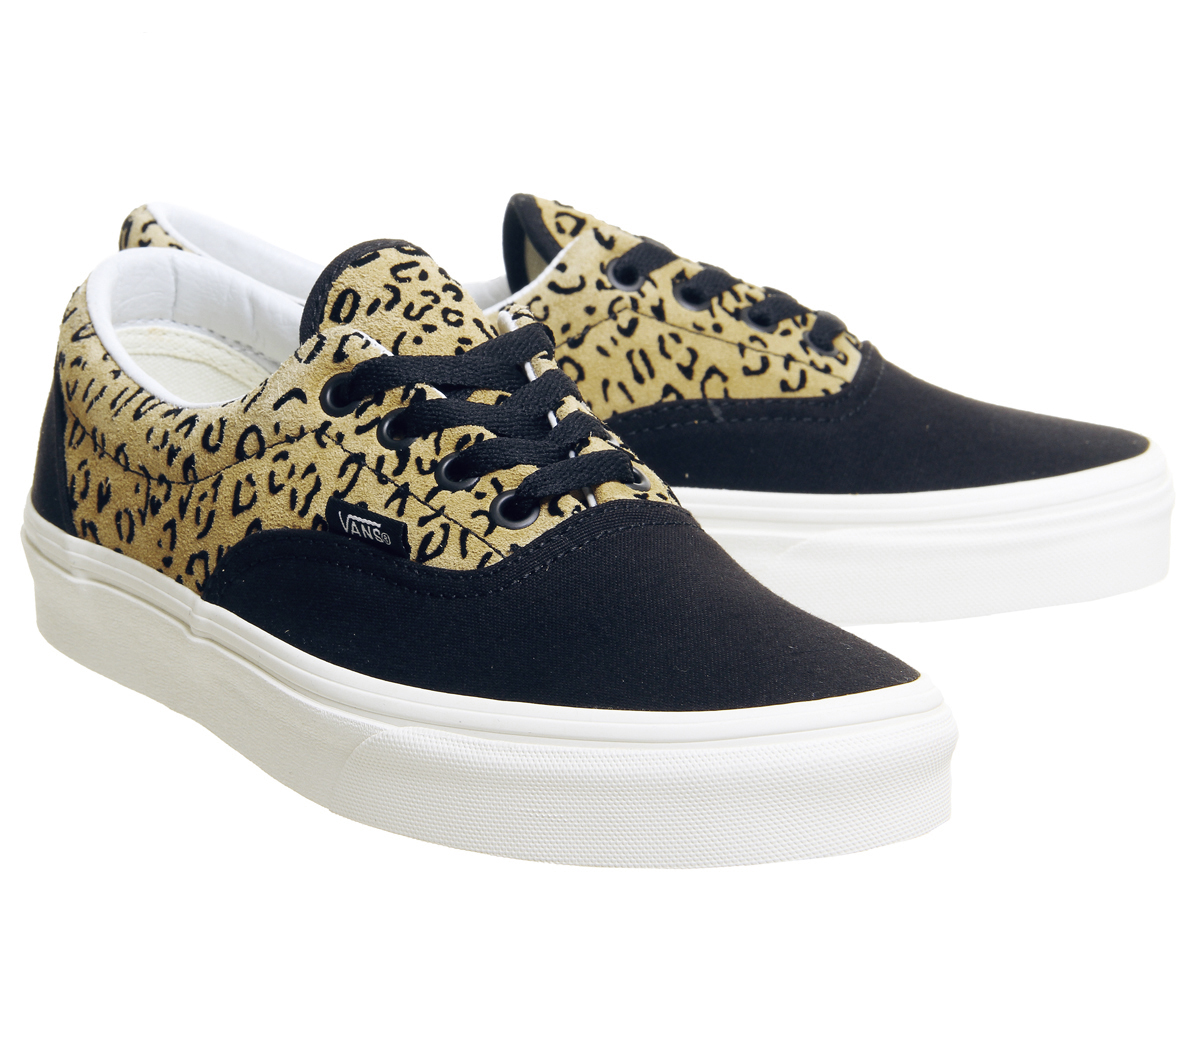 8649a710aa Mens Vans Era Trainers Leopard Black Taffy Marshmellow Exclusive ...